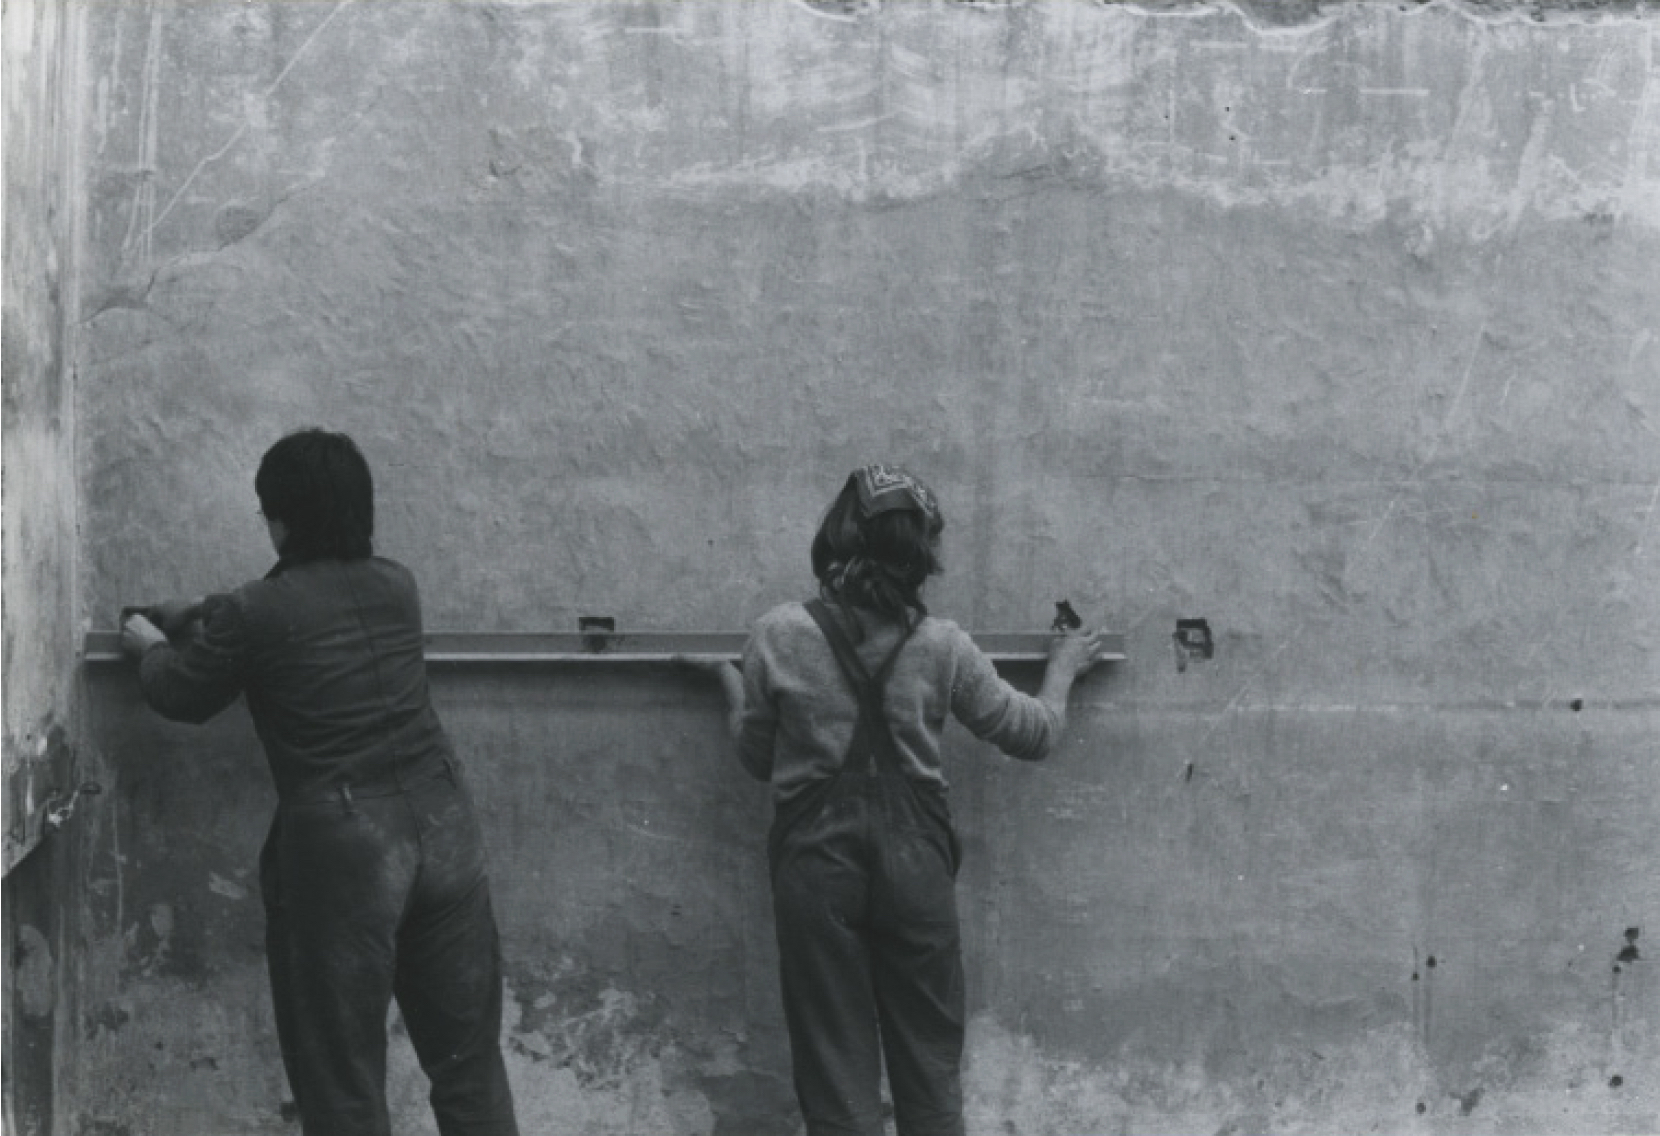 """[Image 3] Research Image. Source: Wall, Christine, """"We don't have leaders! We're doing it ourselves"""", Field Journal, Vol 7(1), page 137. Image credits: Architects Mary-Lou Ascott and Susan Francis, one of the founder members of Matrix, setting out a floor plate."""